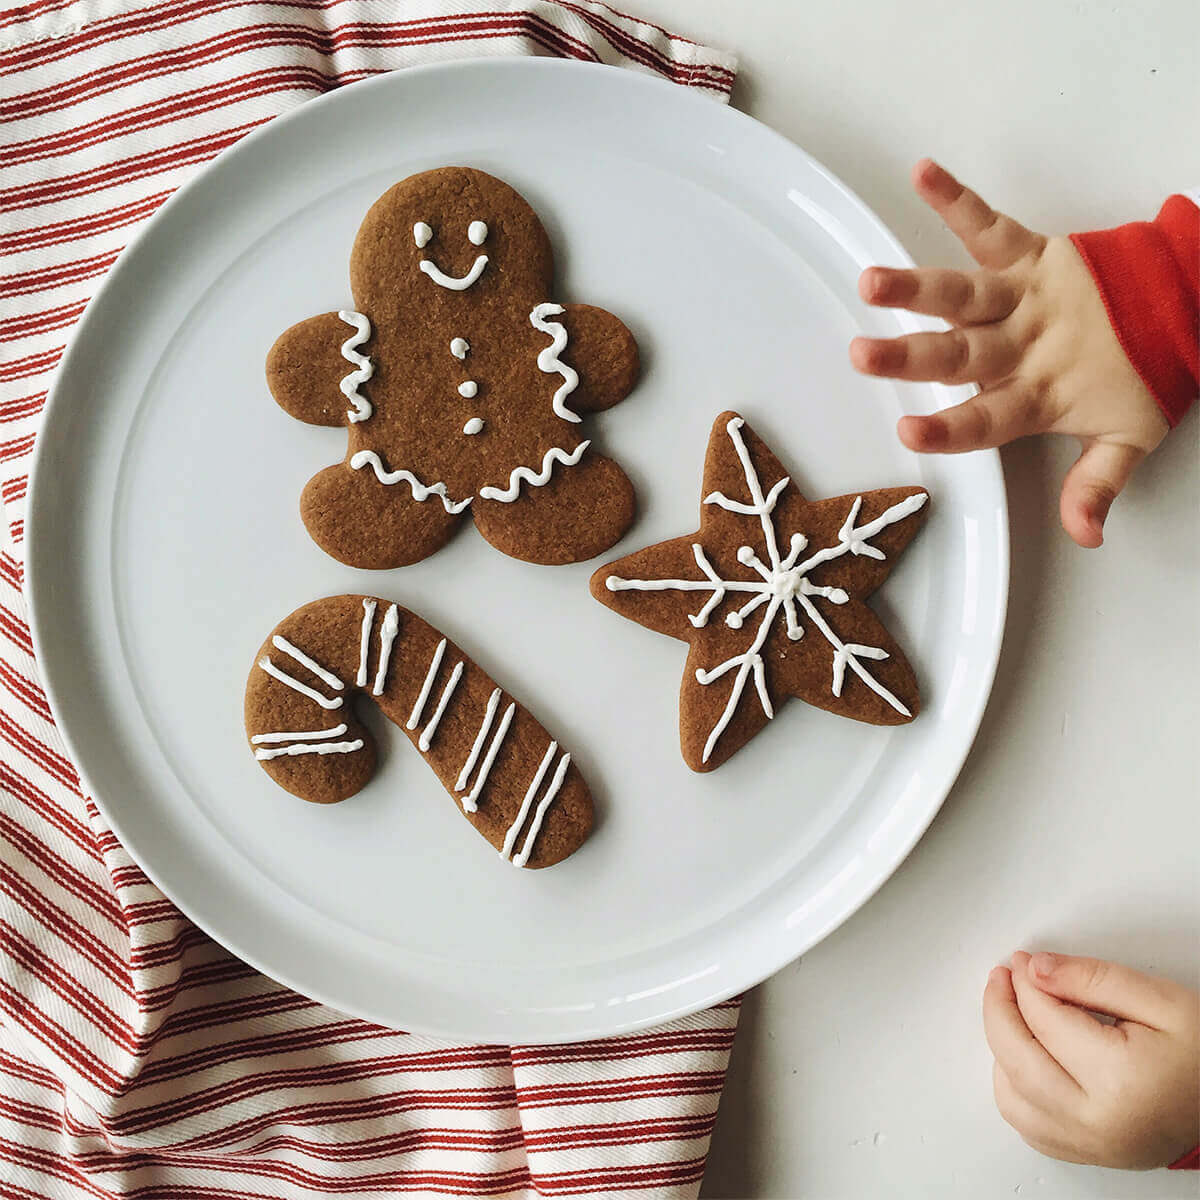 Child's hand grabbing cookie from plate